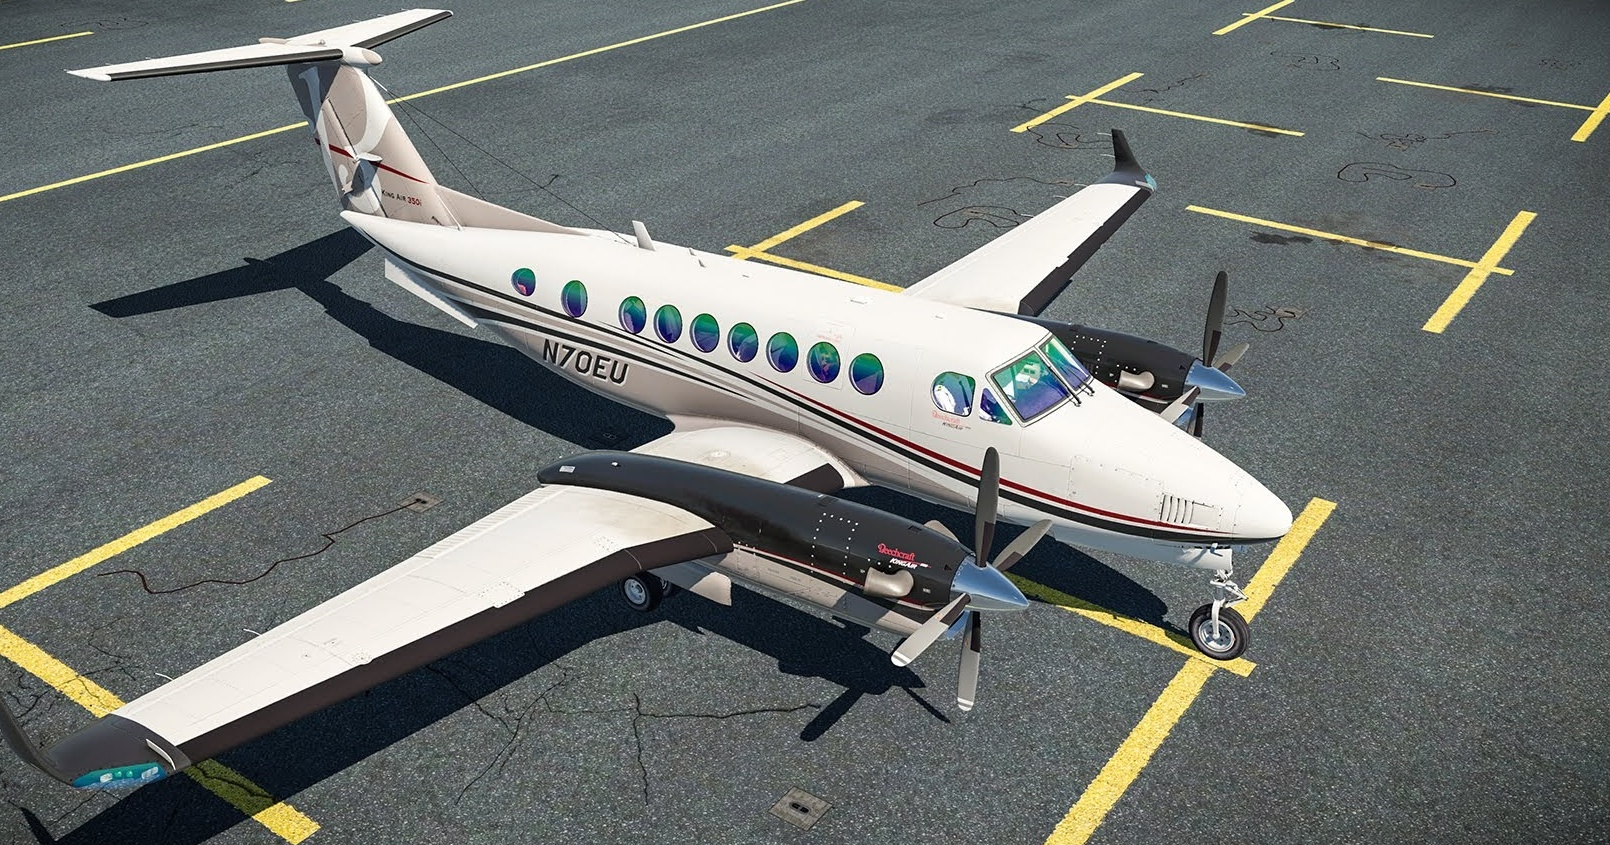 Airfoillabs King Air 350 released for X-Plane 11